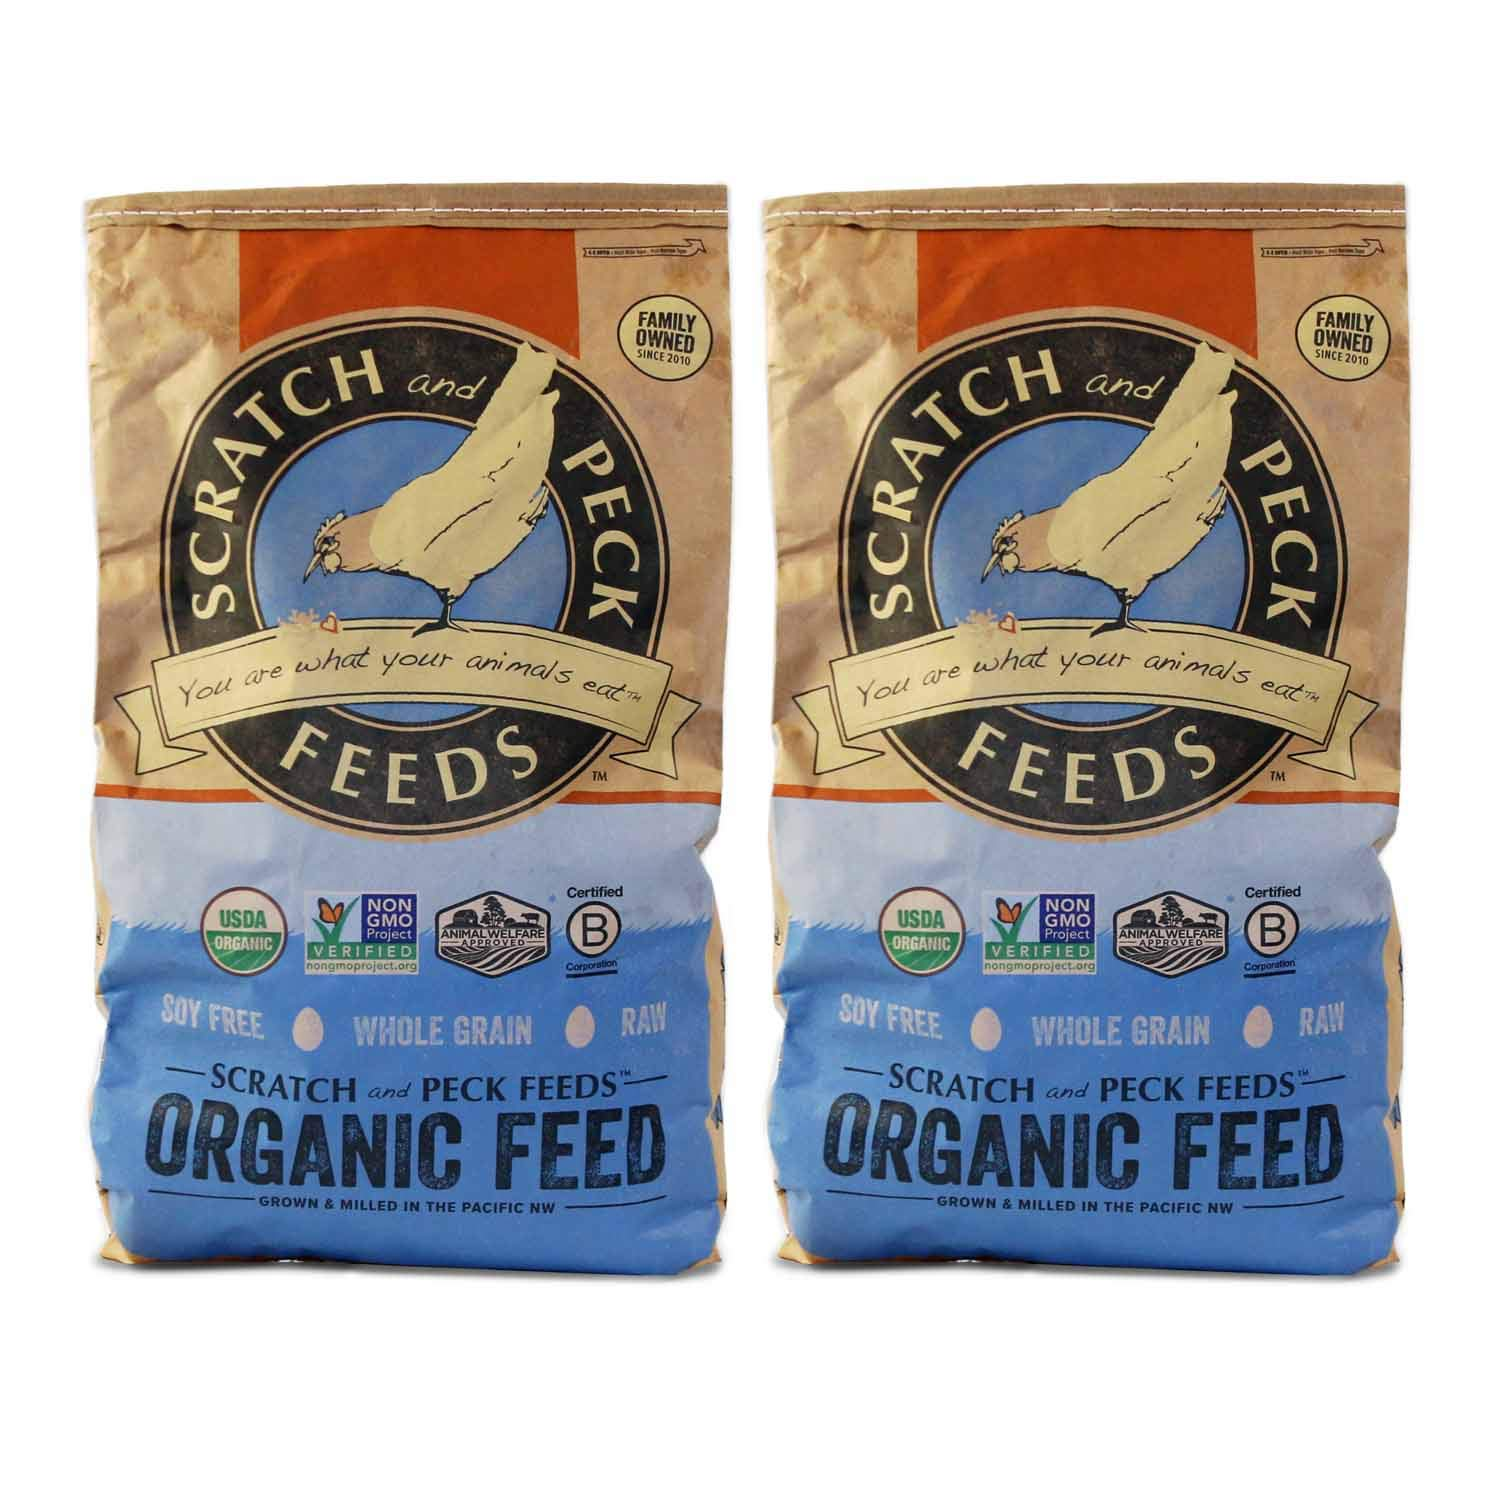 Naturally Free Organic Layer Feed for Chickens and Ducks - 16% Protein - Non-GMO Project Verified, Soy Free and Corn Free - Scratch and Peck Feeds by SCRATCH AND PECK FEEDS YOU ARE WHAT YOUR ANIMALS EAT